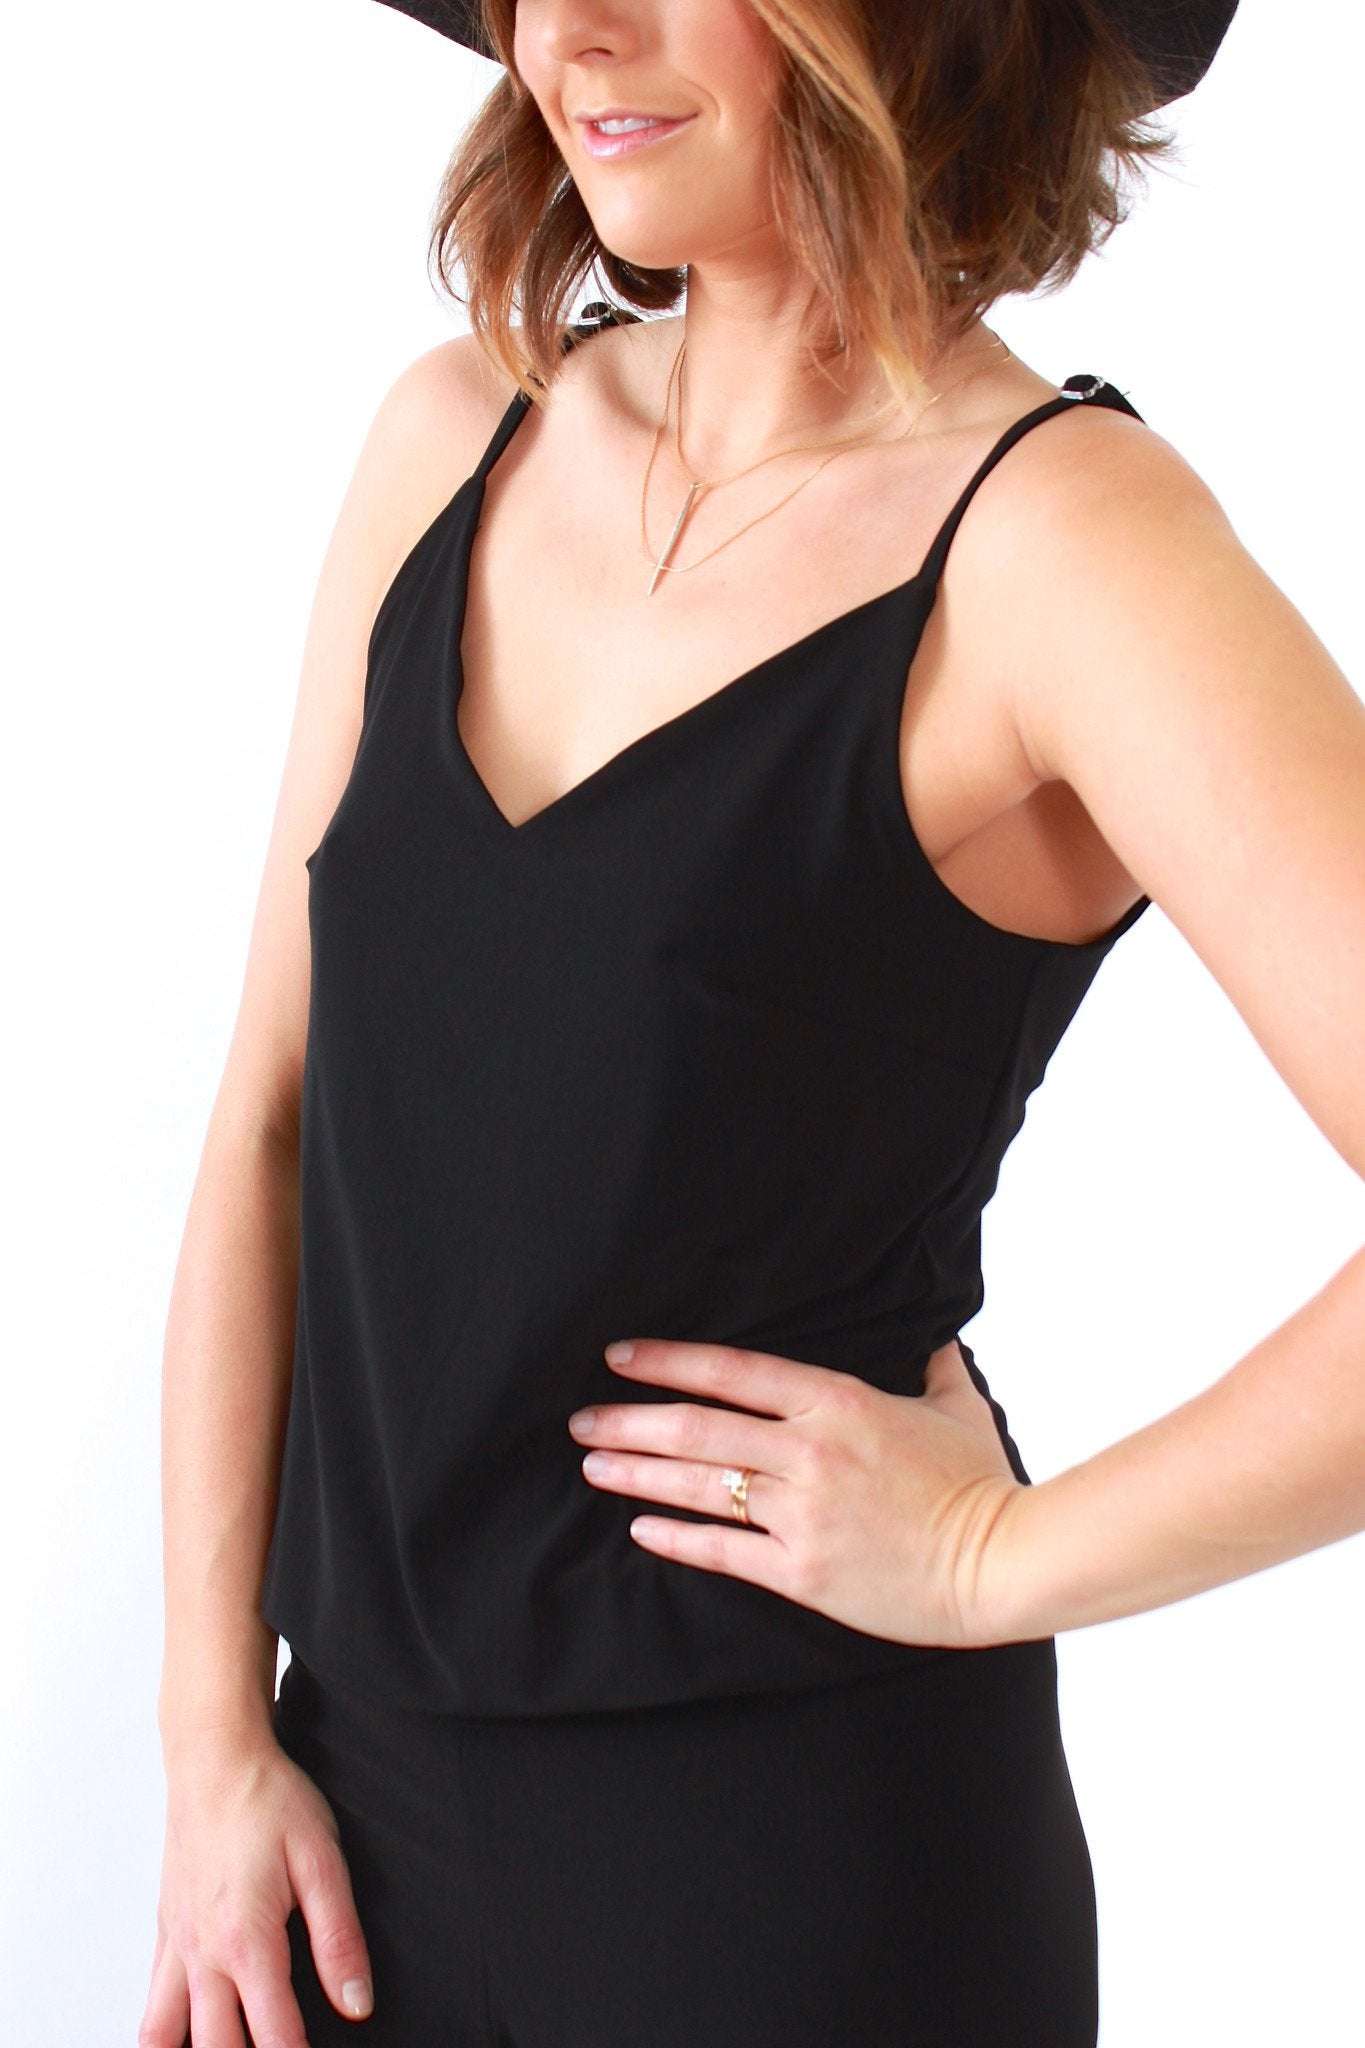 Dress - Viereck, Torquay Jumper In Solid Black